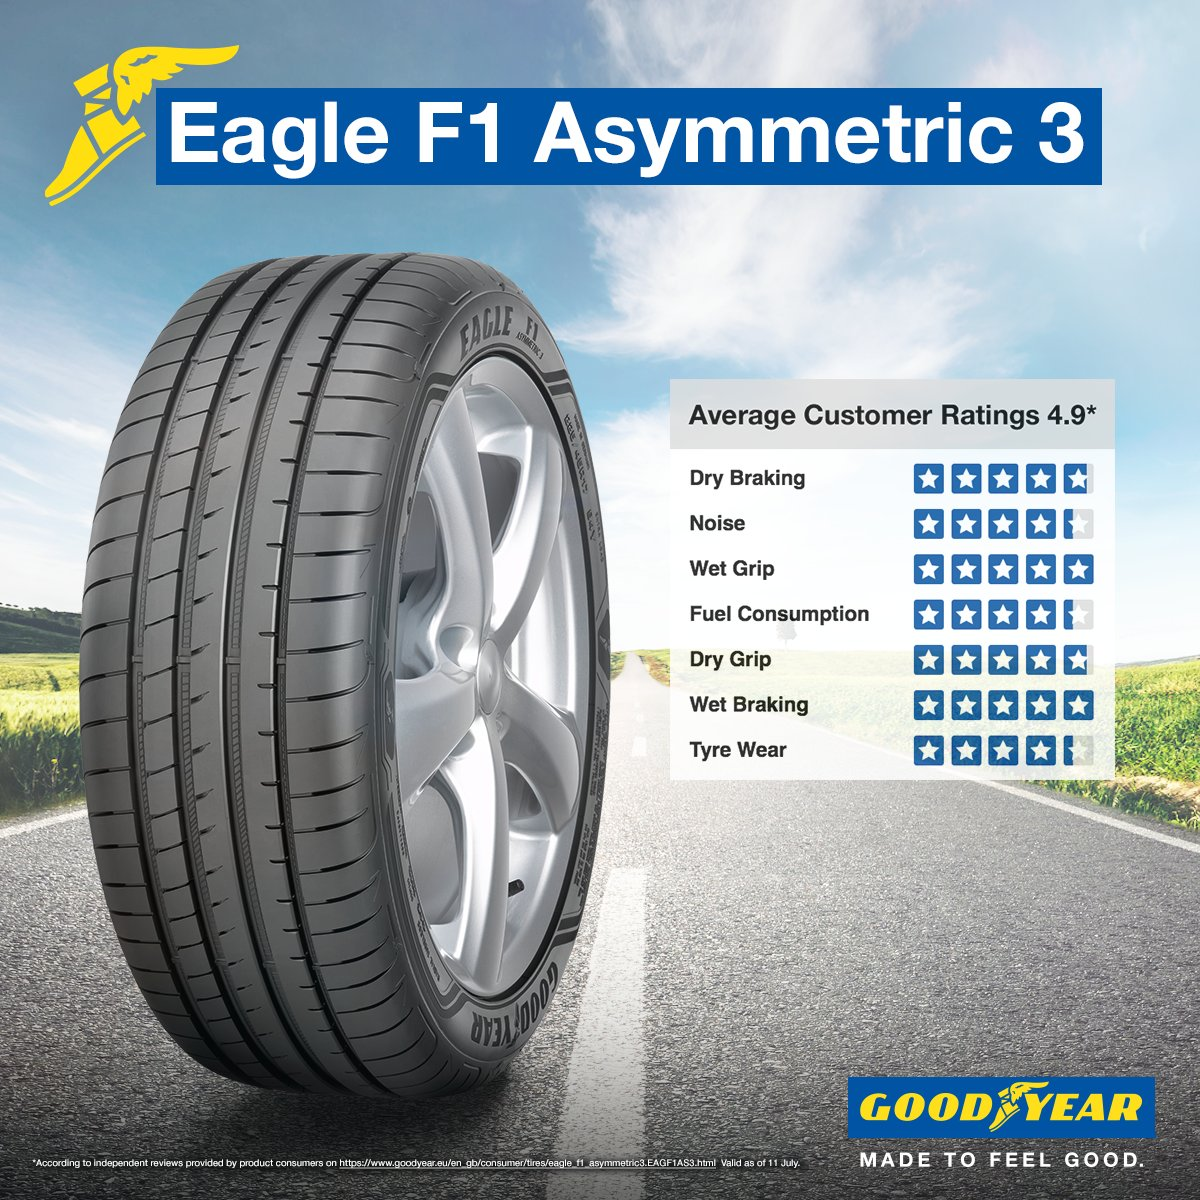 Goodyear Tyres Goodyear Tyres On Twitter